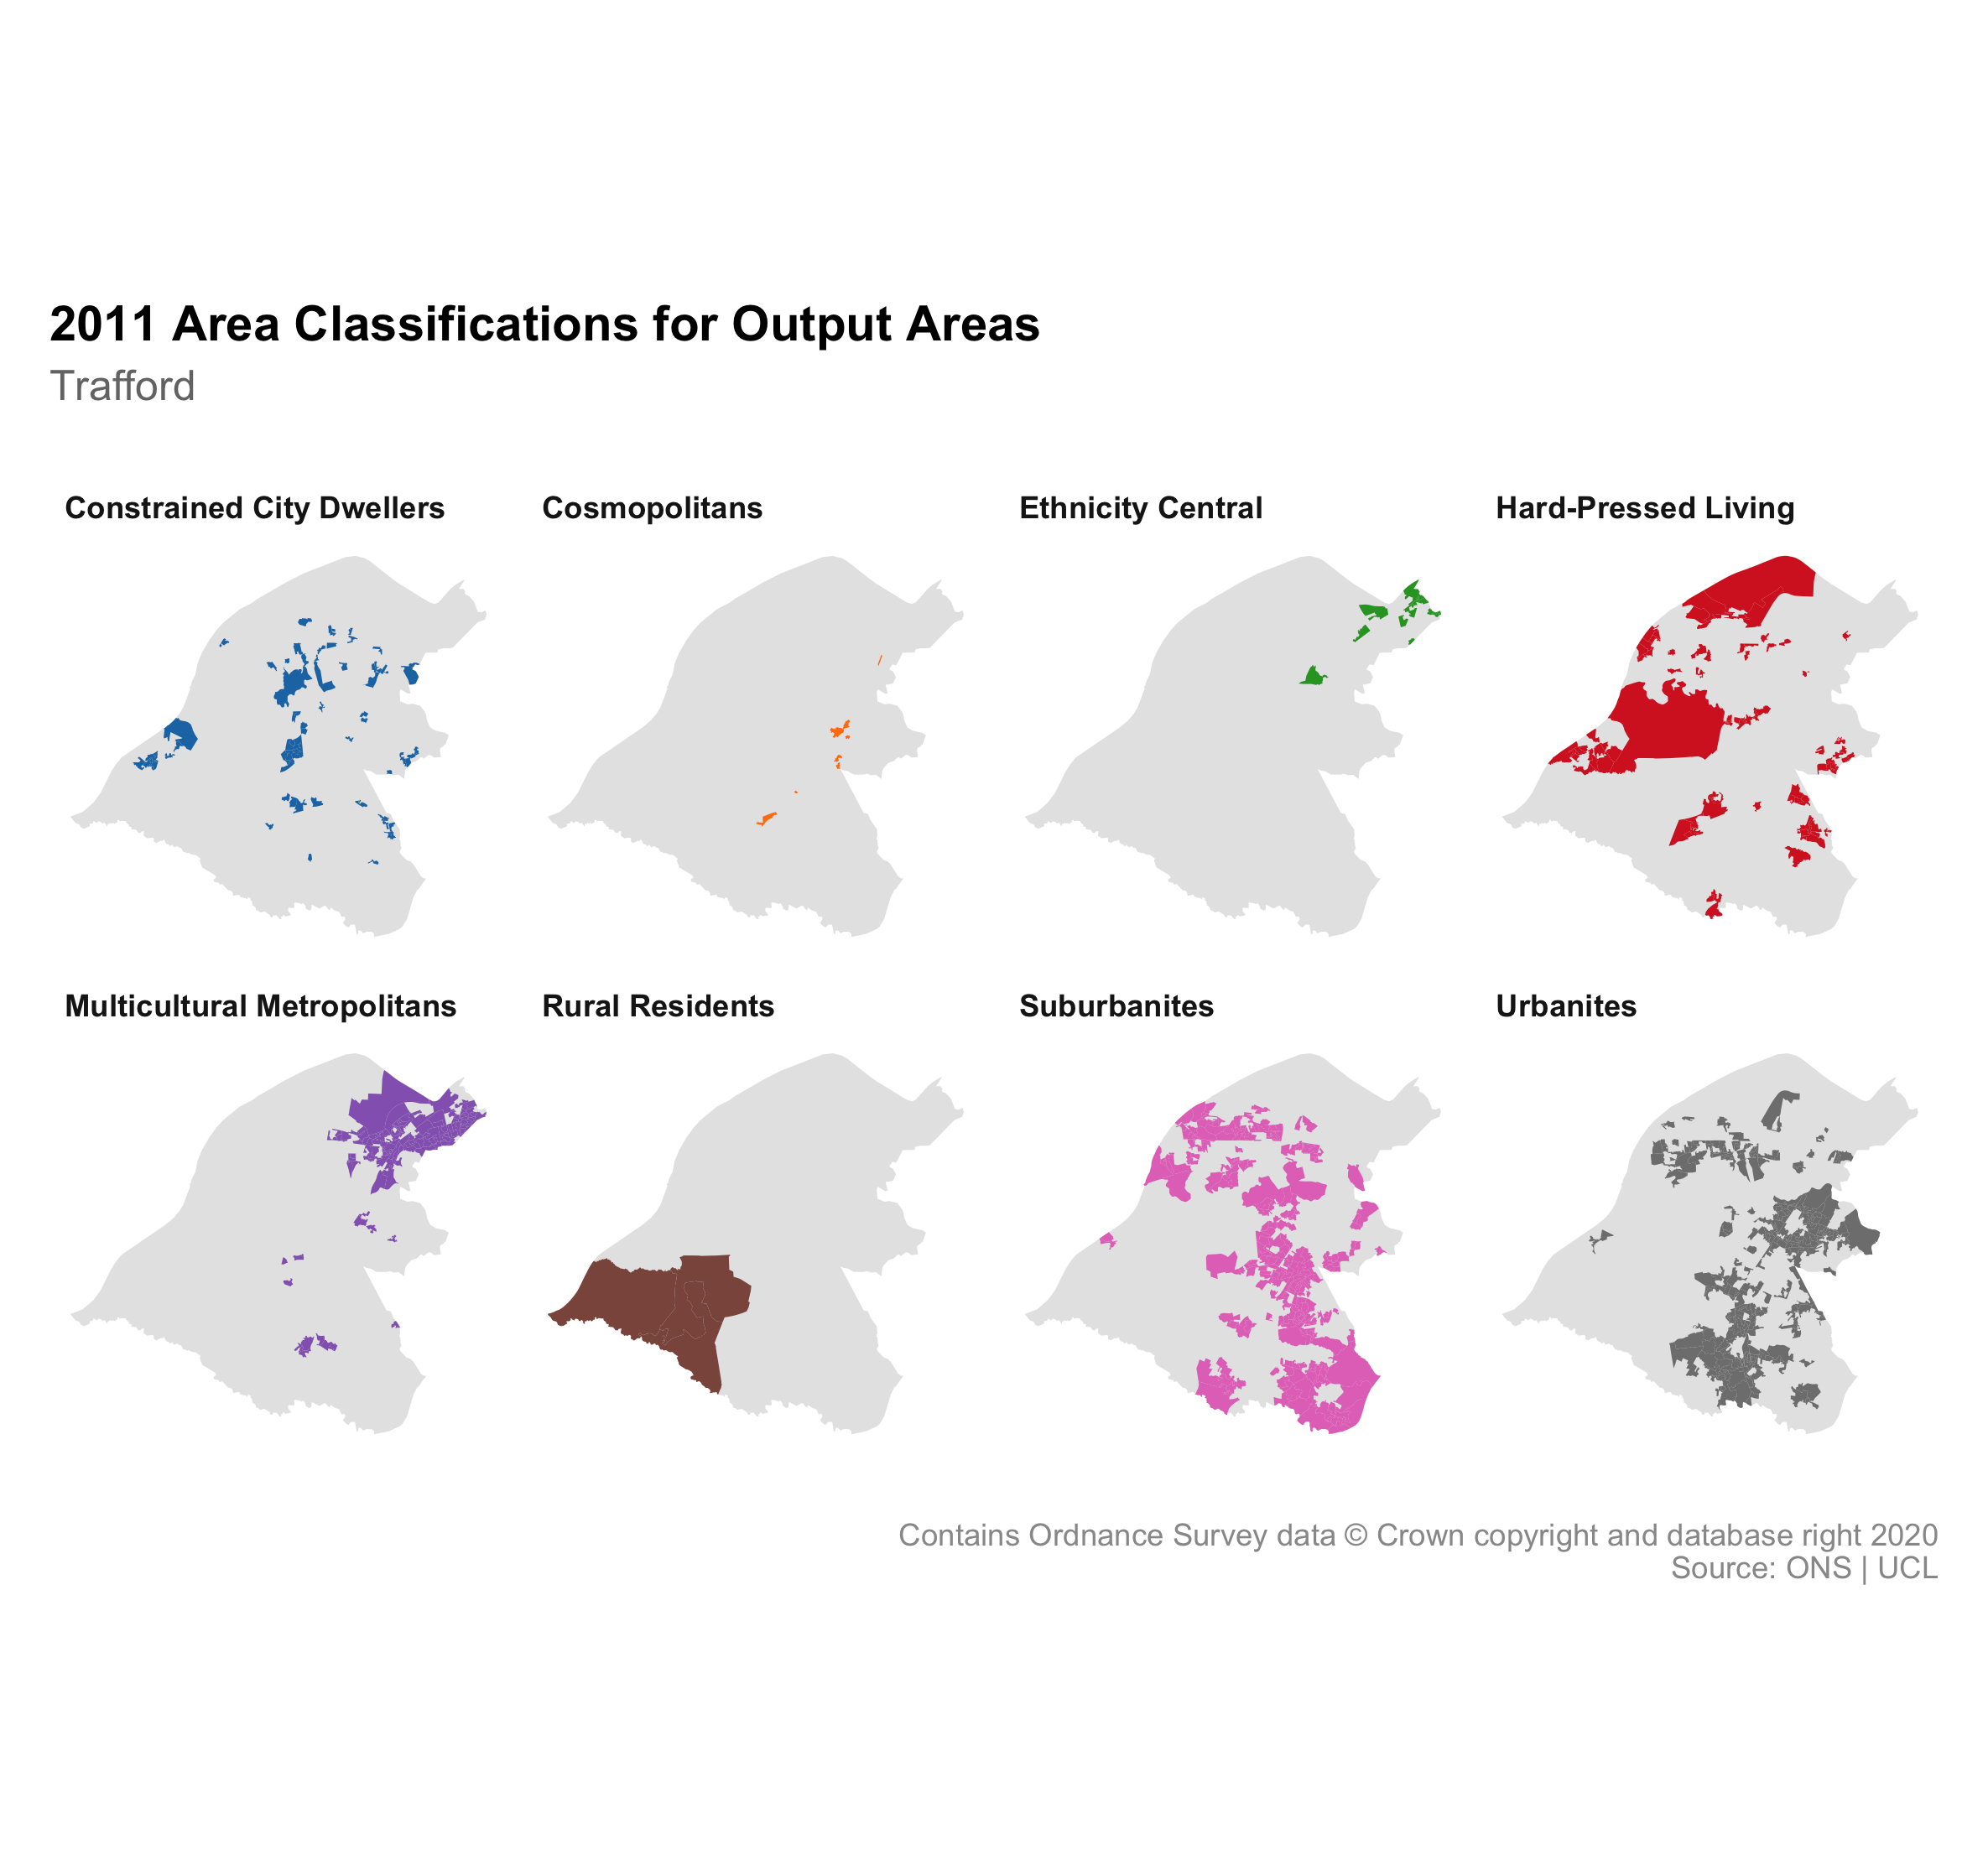 8 small maps of Trafford showing the different 2011 Output Area Classifications within.